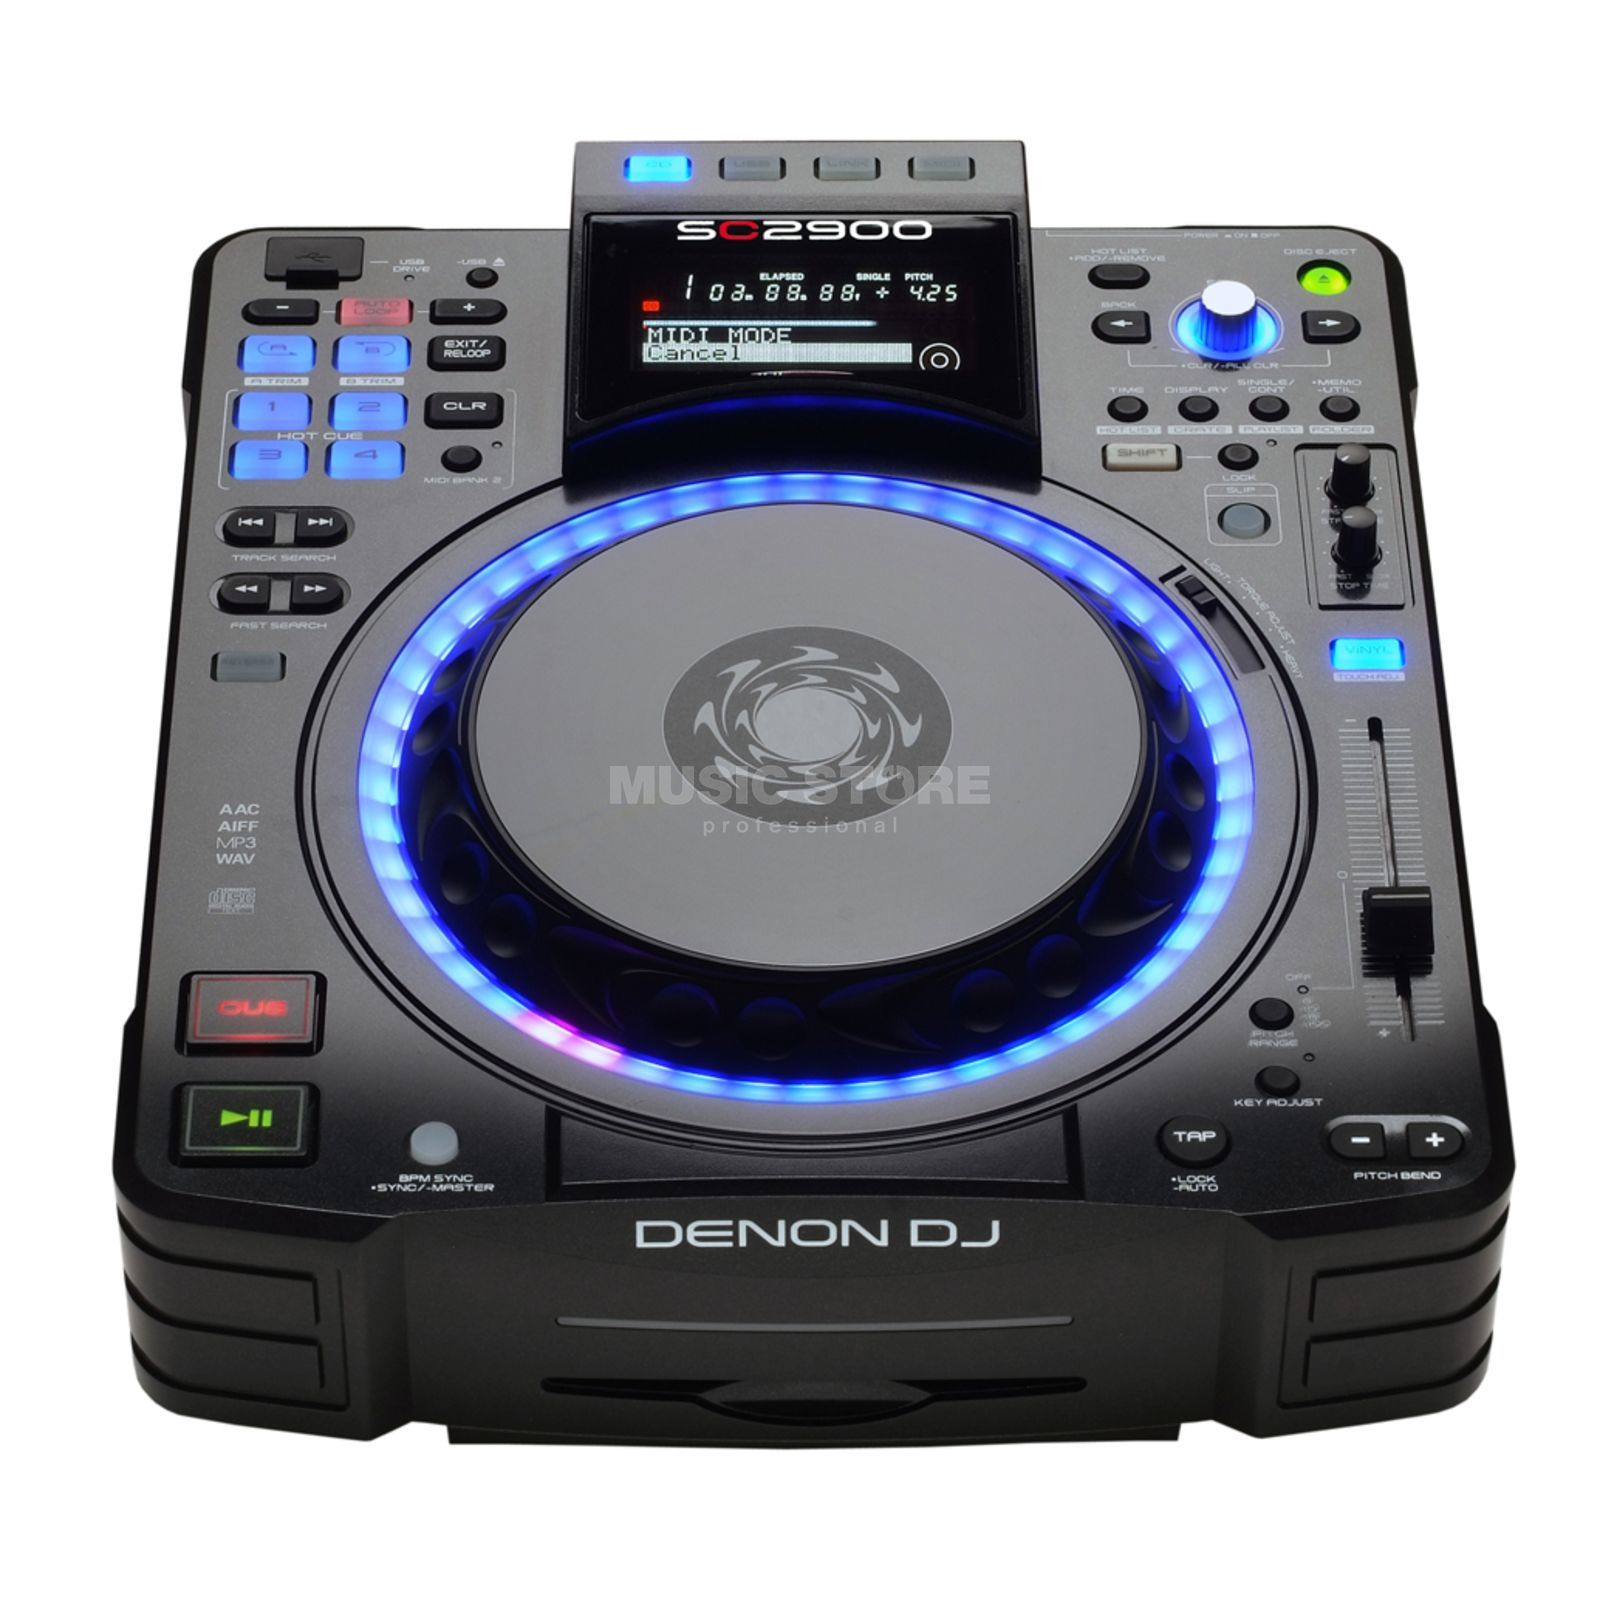 Denon DJ DN-SC2900 Controller & Media Player Product Image